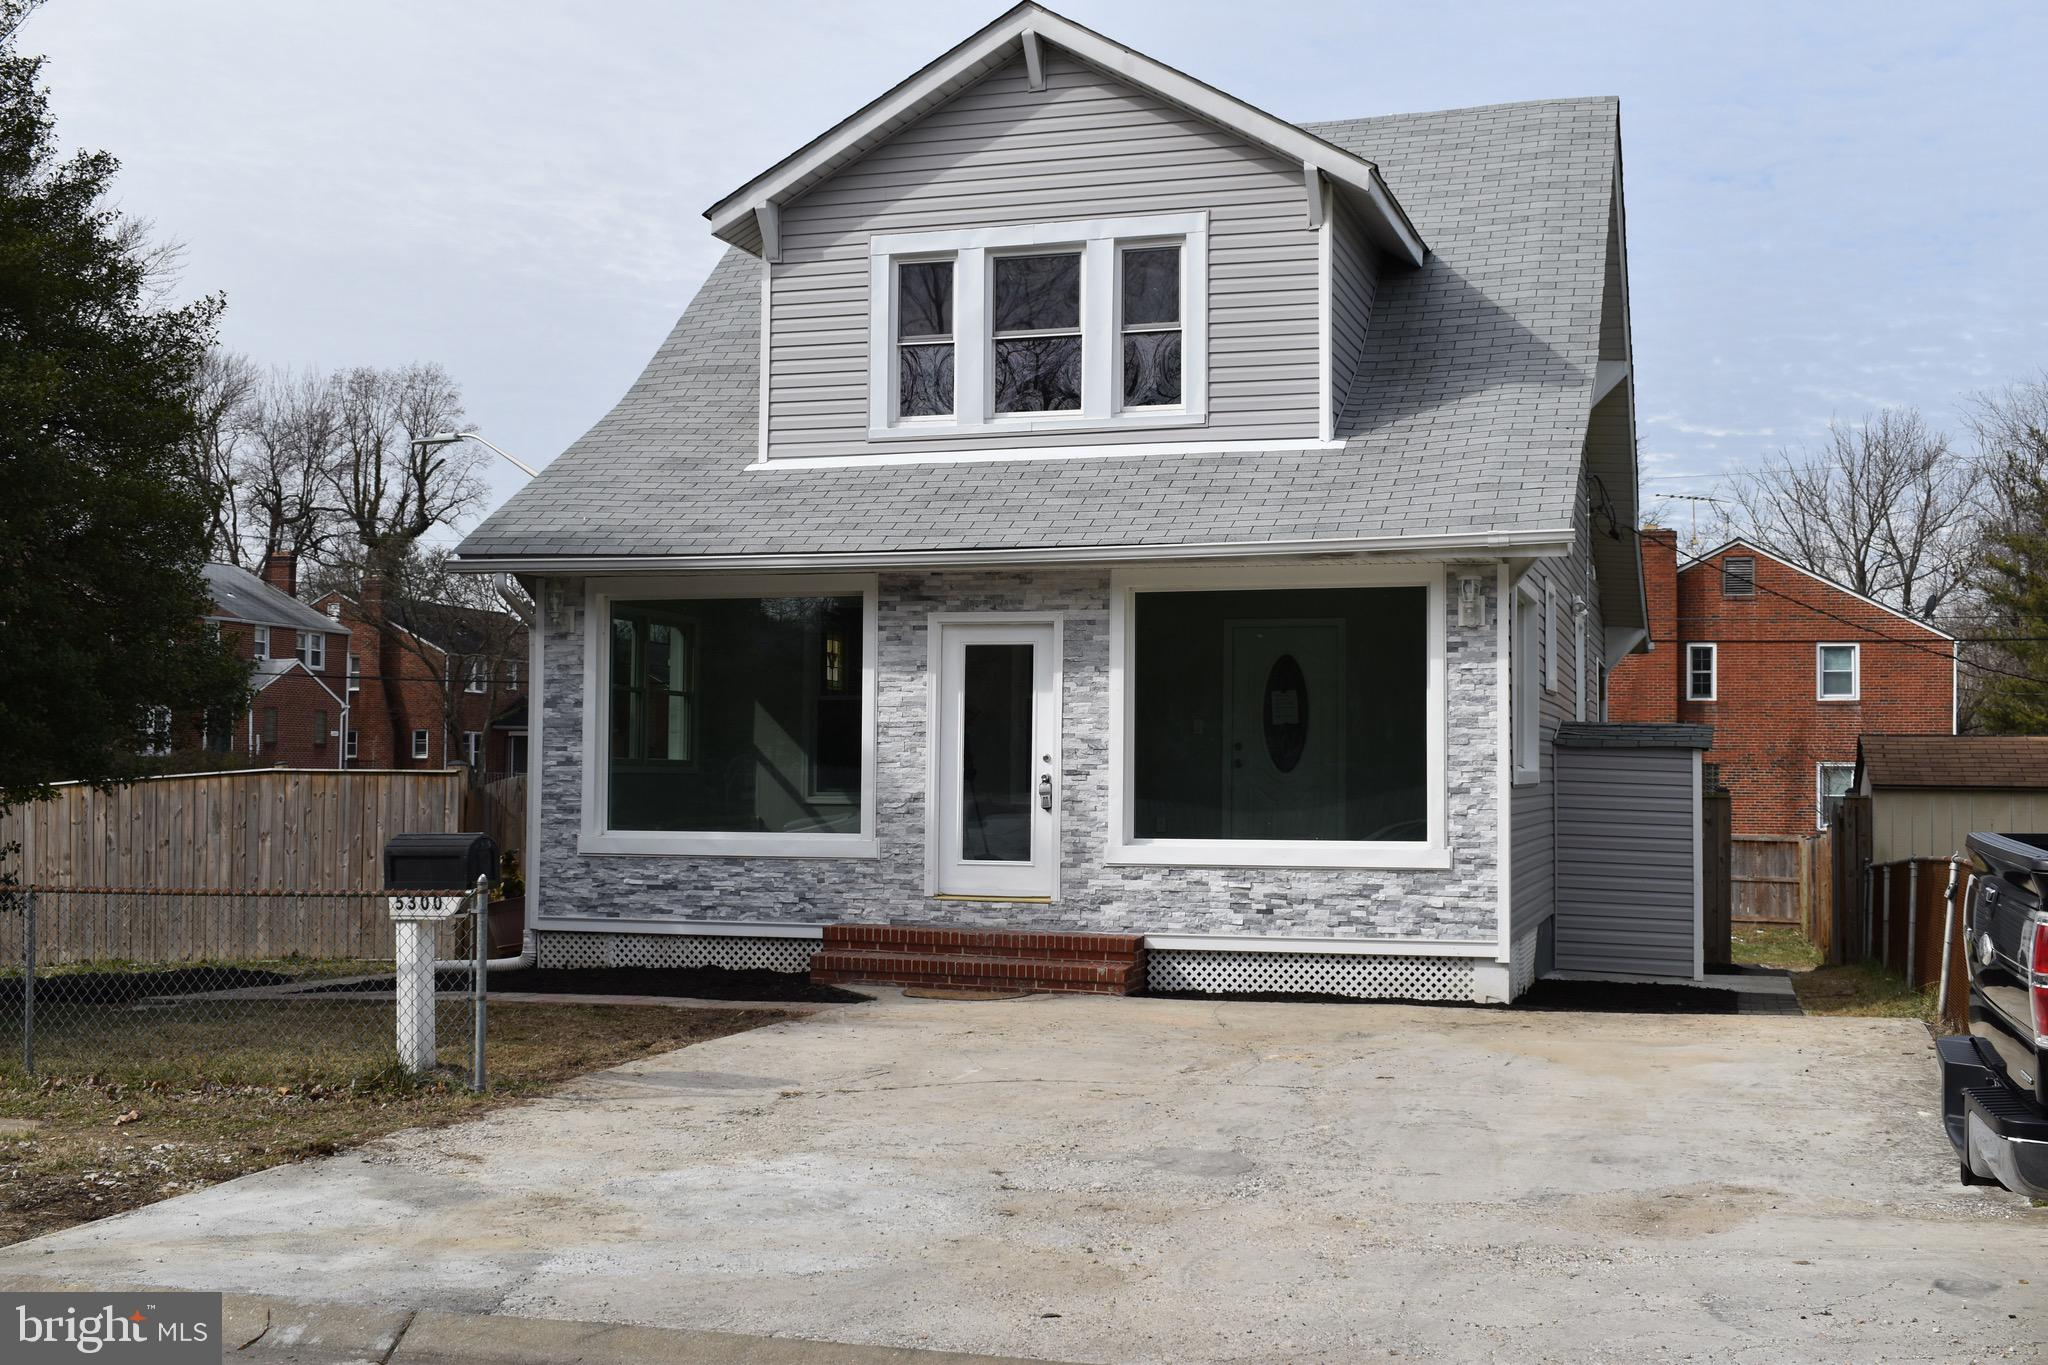 5300 CATALPHA ROAD, BALTIMORE, MD 21214